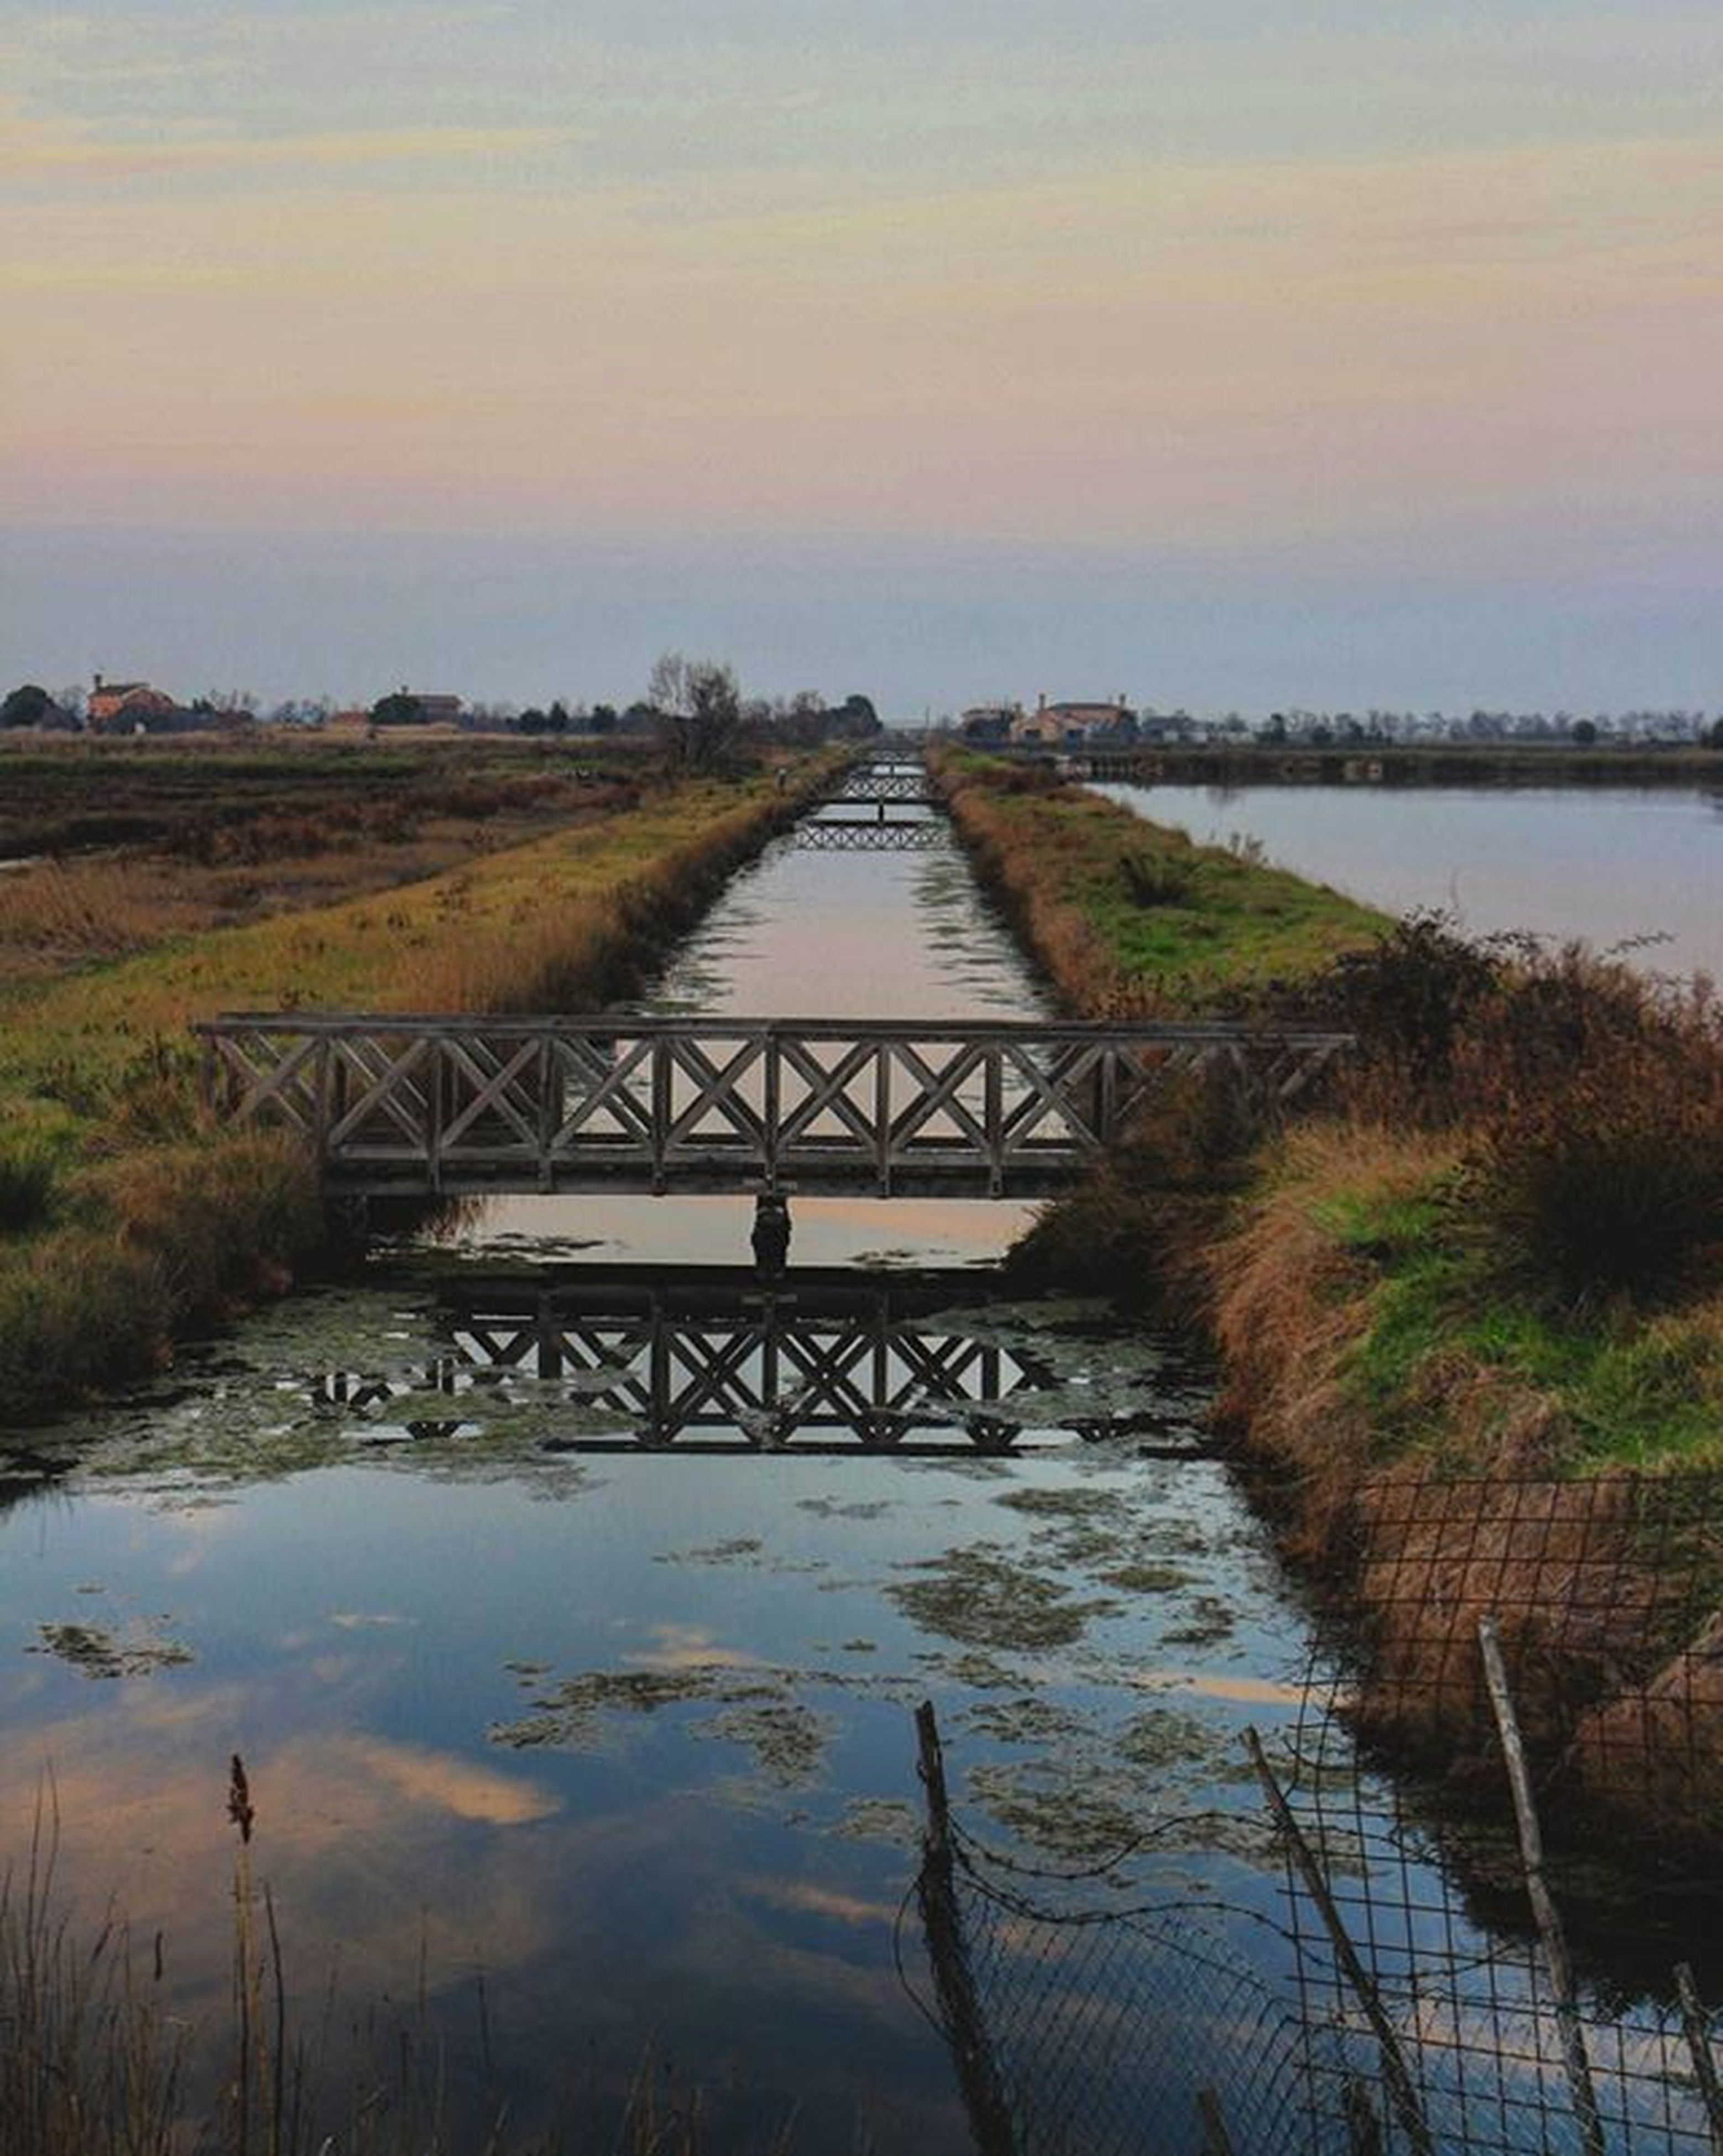 water, sunset, reflection, connection, tranquility, built structure, tranquil scene, river, sky, lake, bridge - man made structure, architecture, scenics, nature, beauty in nature, plant, no people, grass, bridge, landscape